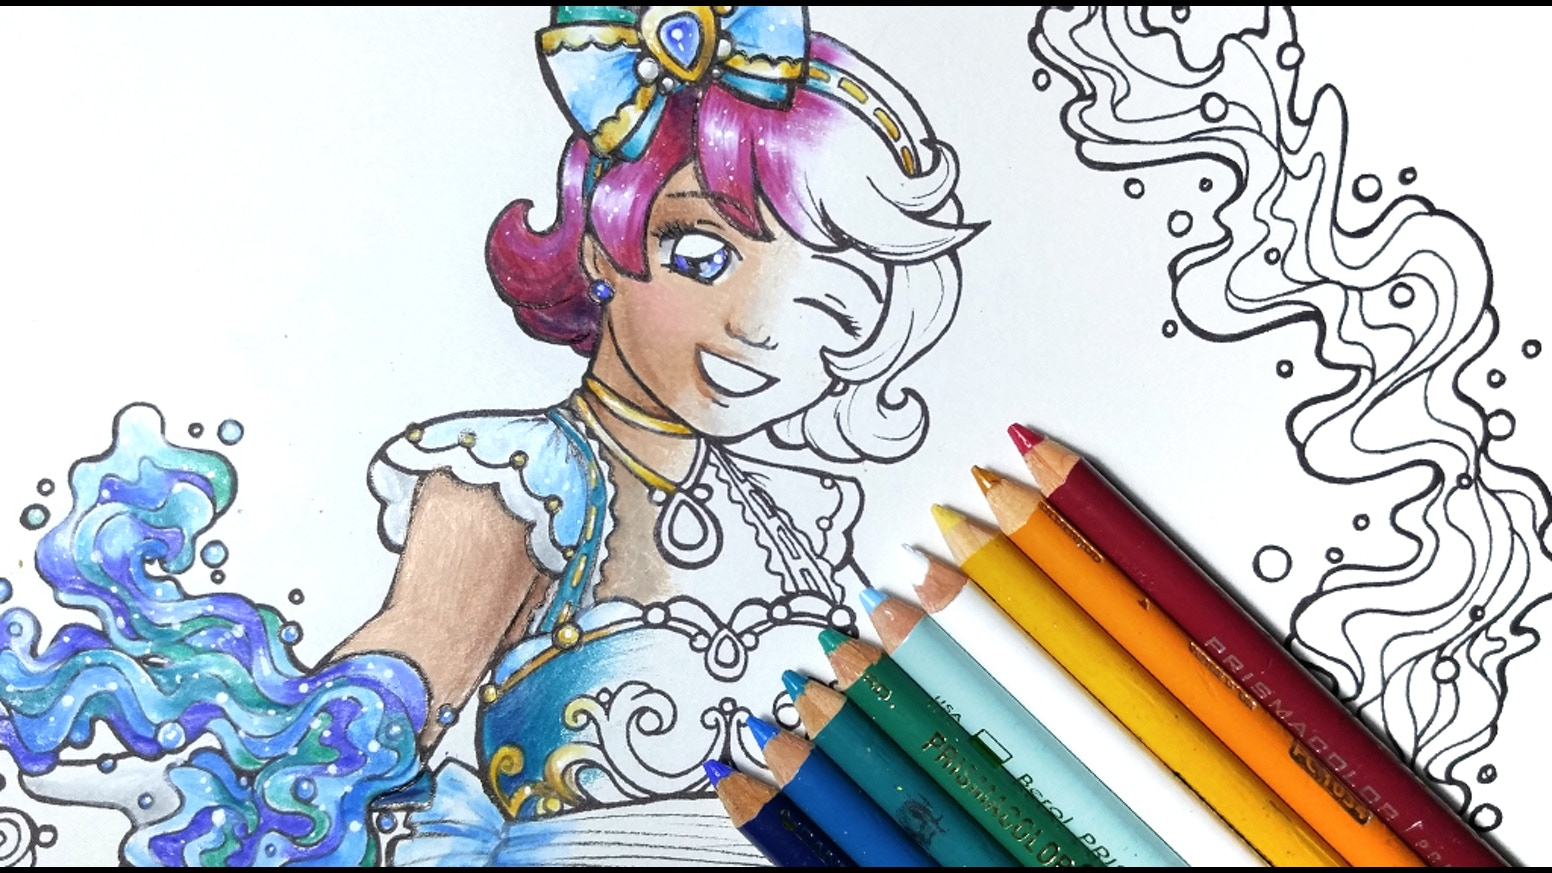 Coloring book html5 - A Print Book Collection Of Lovely Magical Girl Designs For Your Coloring Pleasure